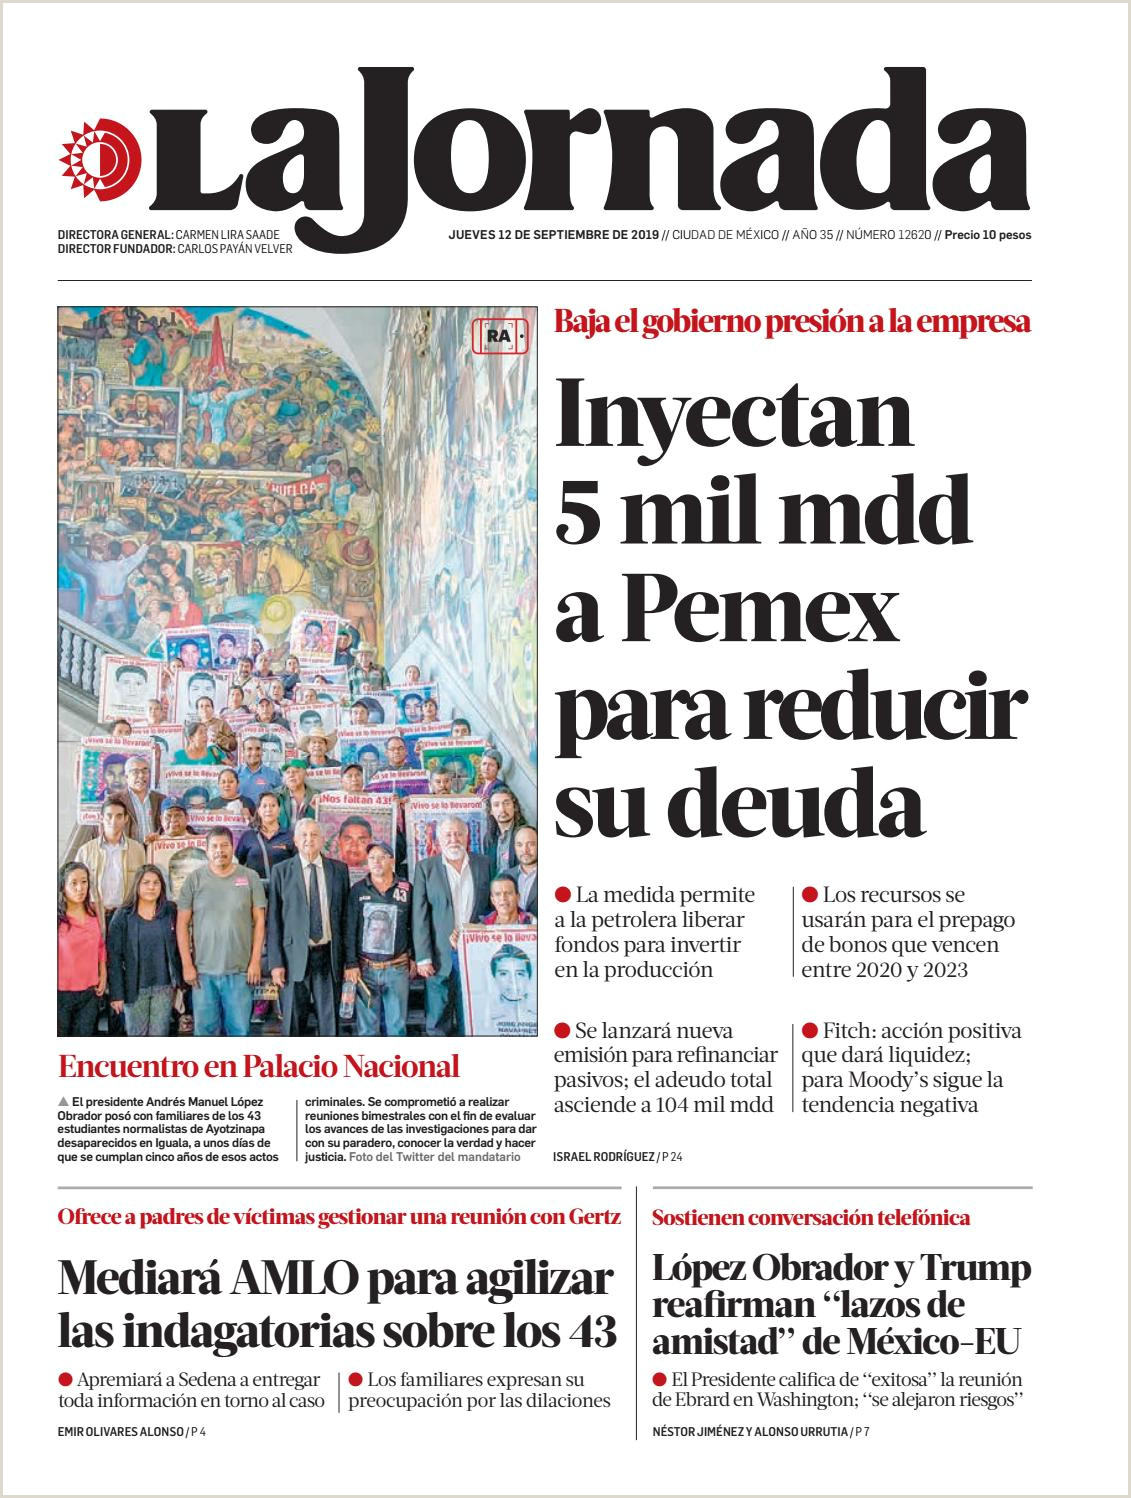 La Jornada 09 12 2019 by La Jornada issuu